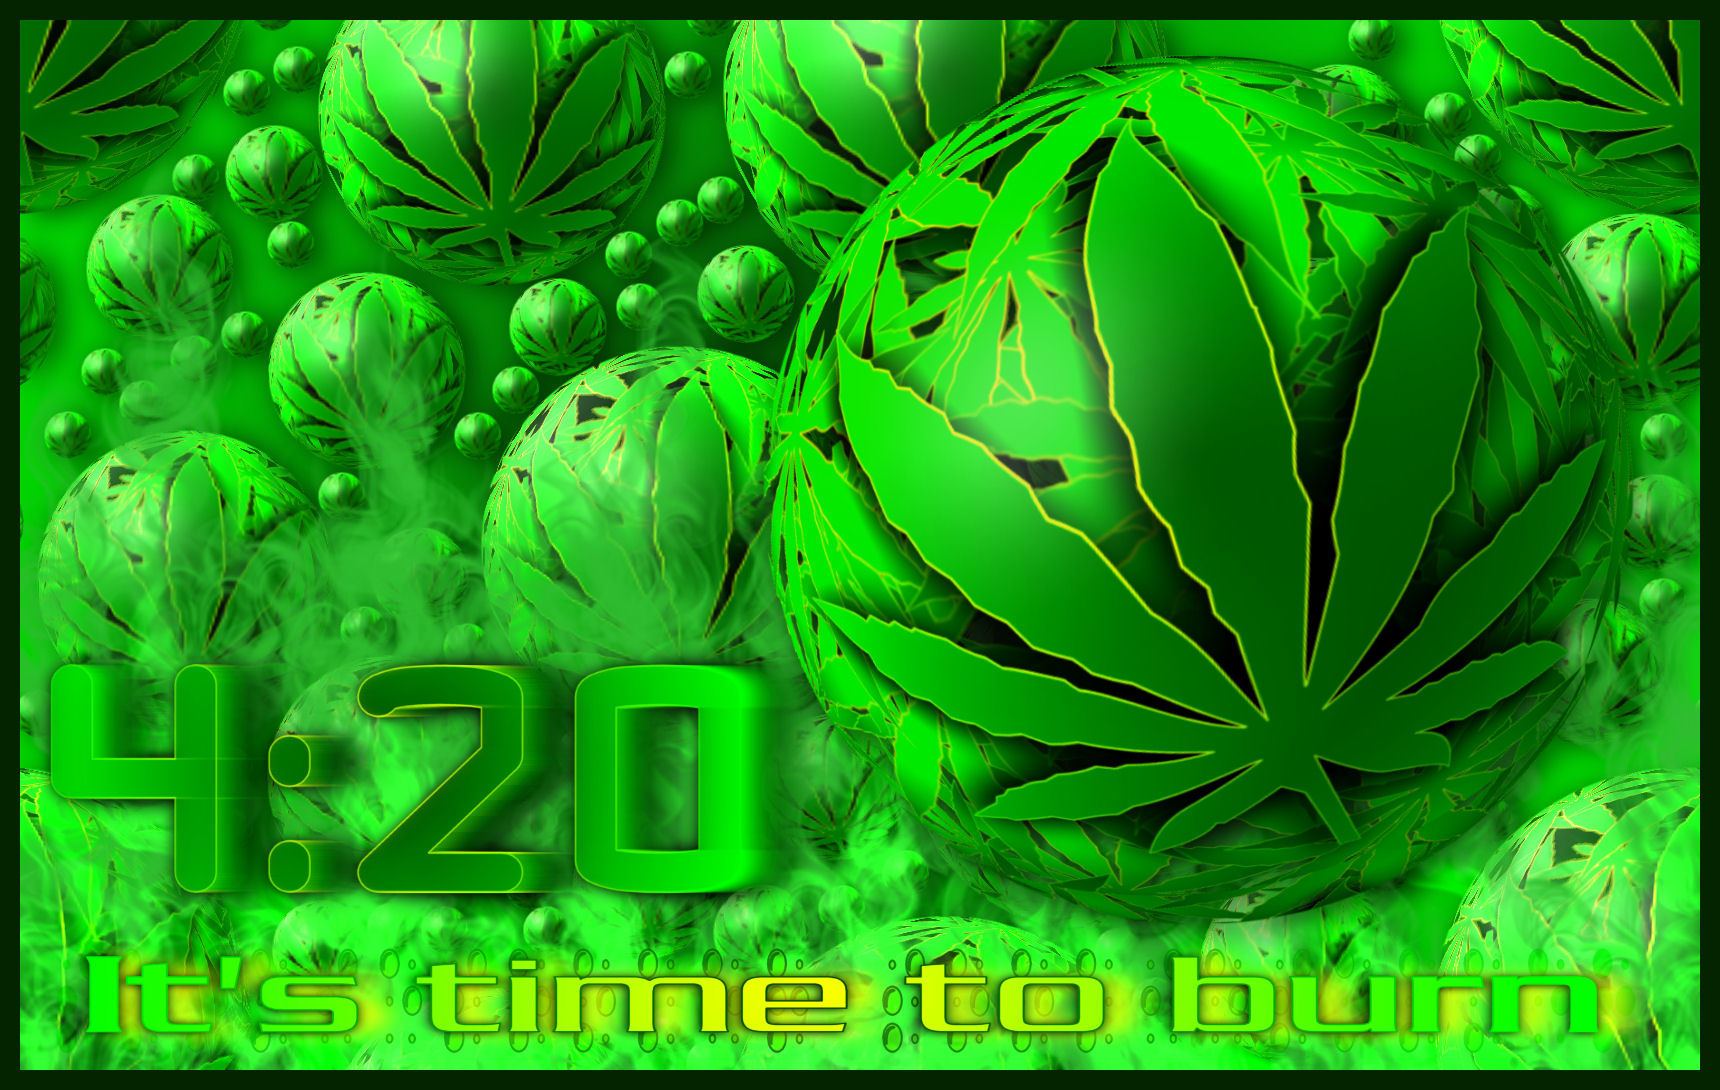 The Cannabis bubble by HD Wallpaper